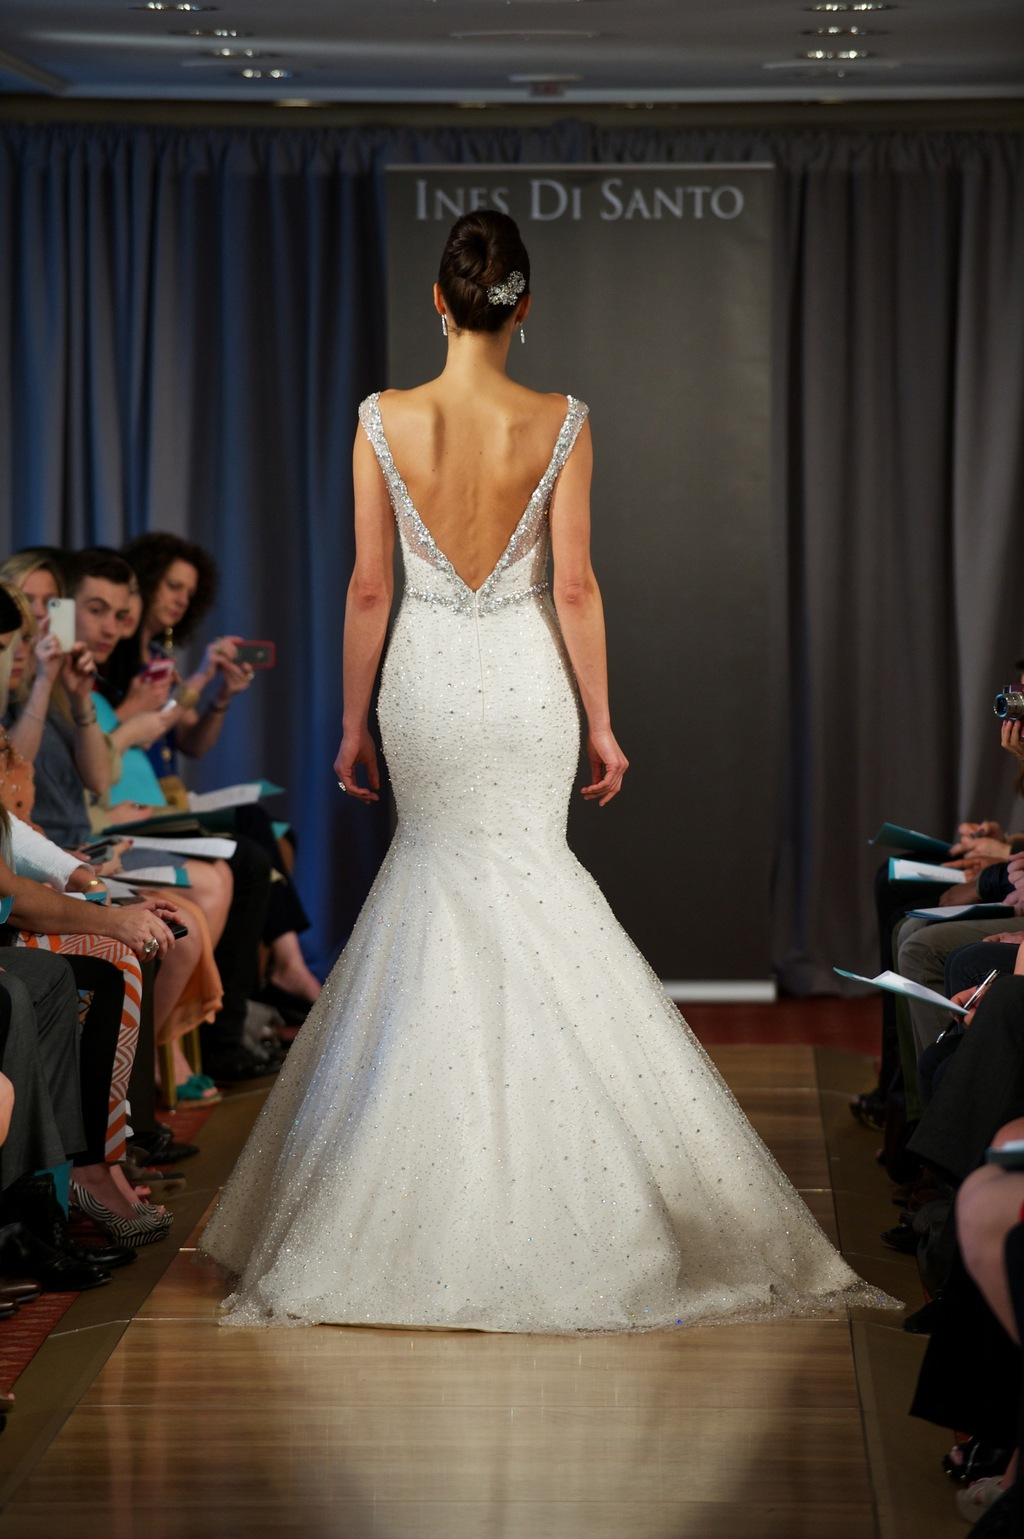 Wedding-dress-spring-2013-bridal-gowns-ines-di-santo-29.full